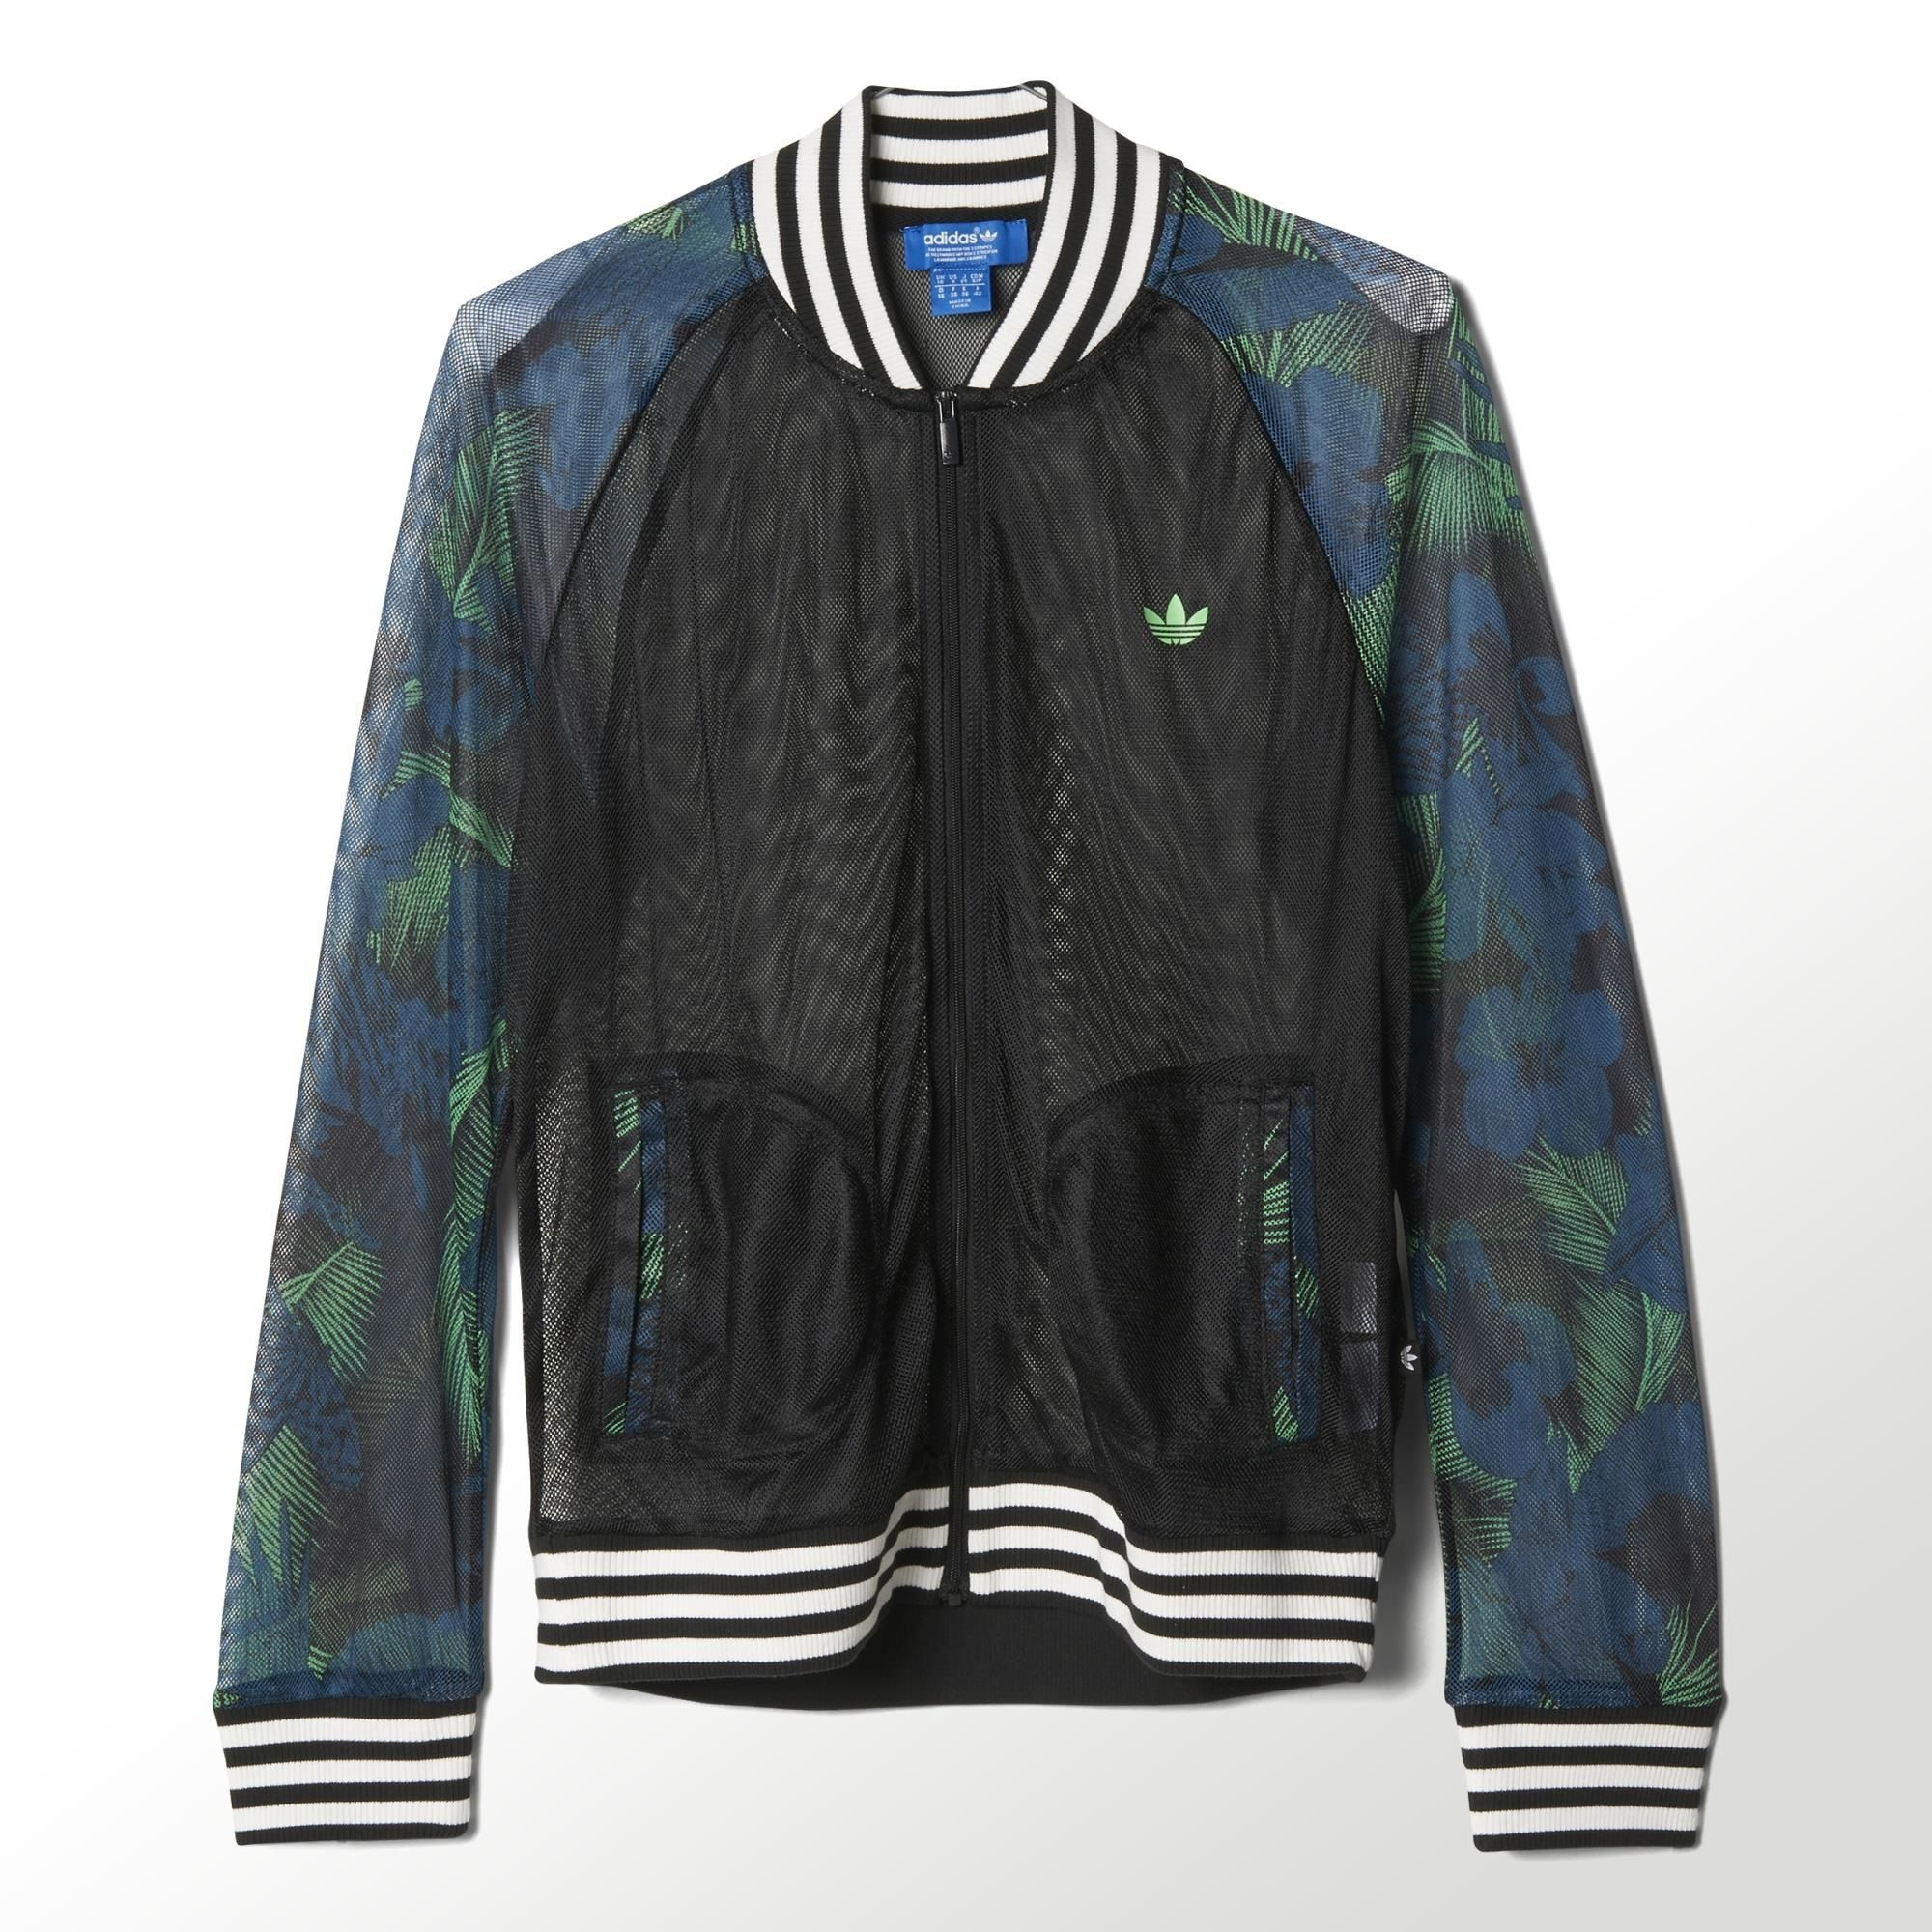 A breezy summer take on the track jacket, this women's Hawaii Superstar  Mesh Track Jacket